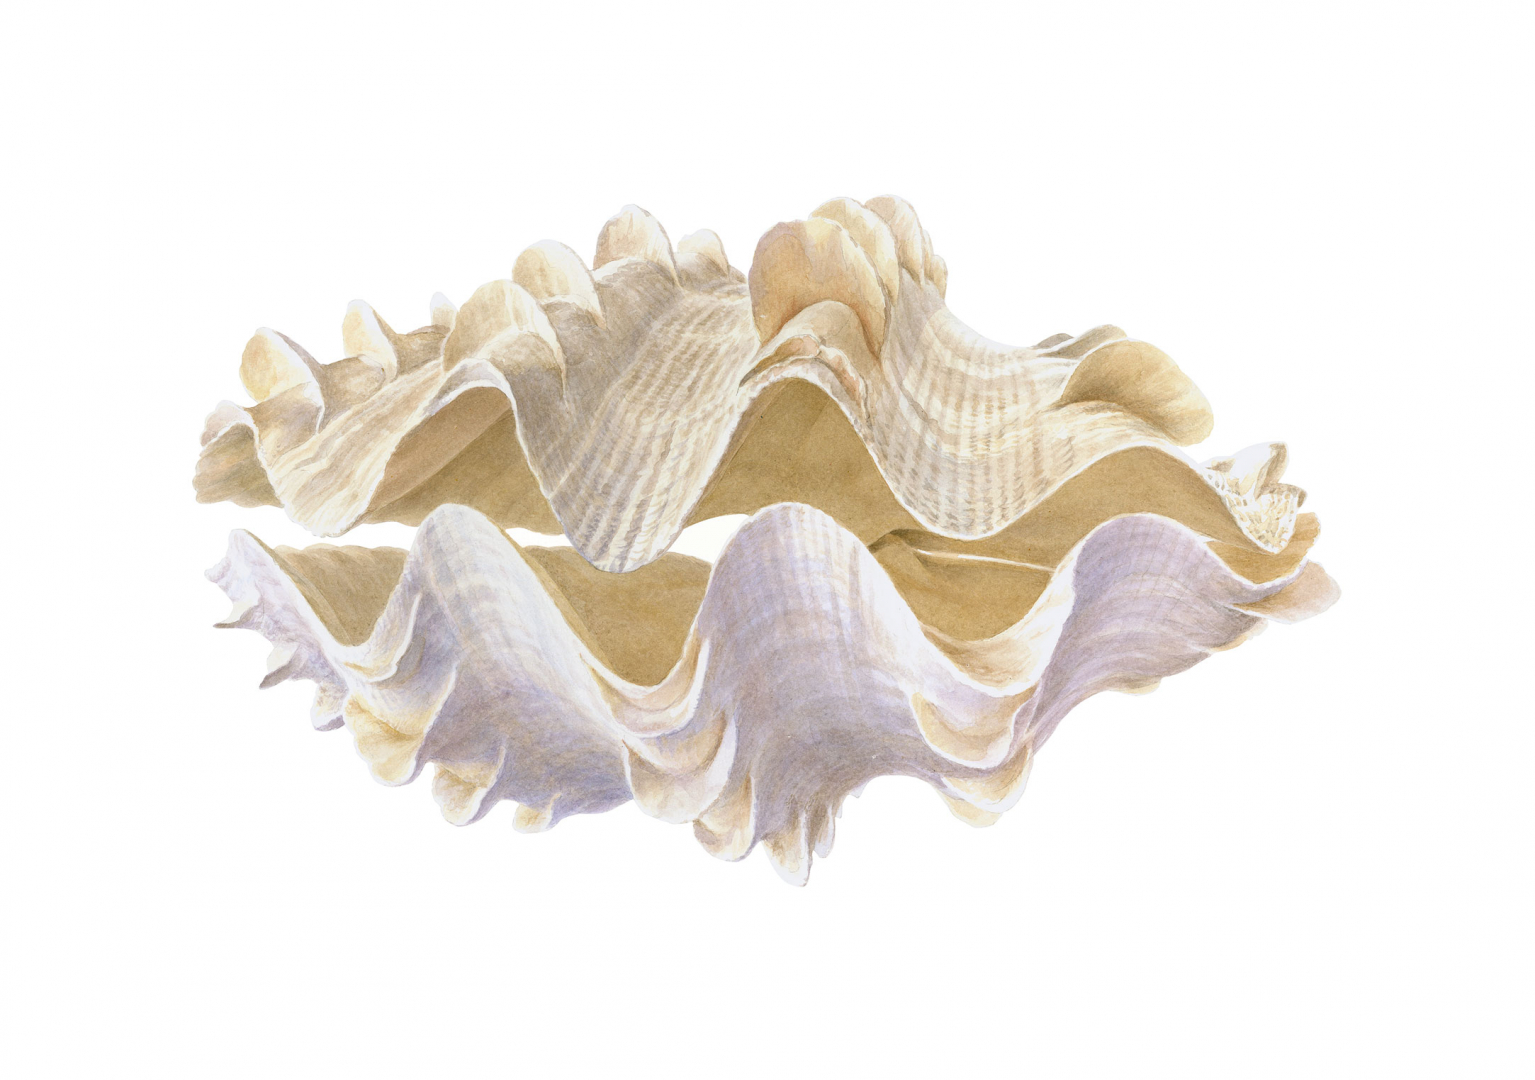 Print-page-Clam,FlutedGiant,,Natural-History-category-